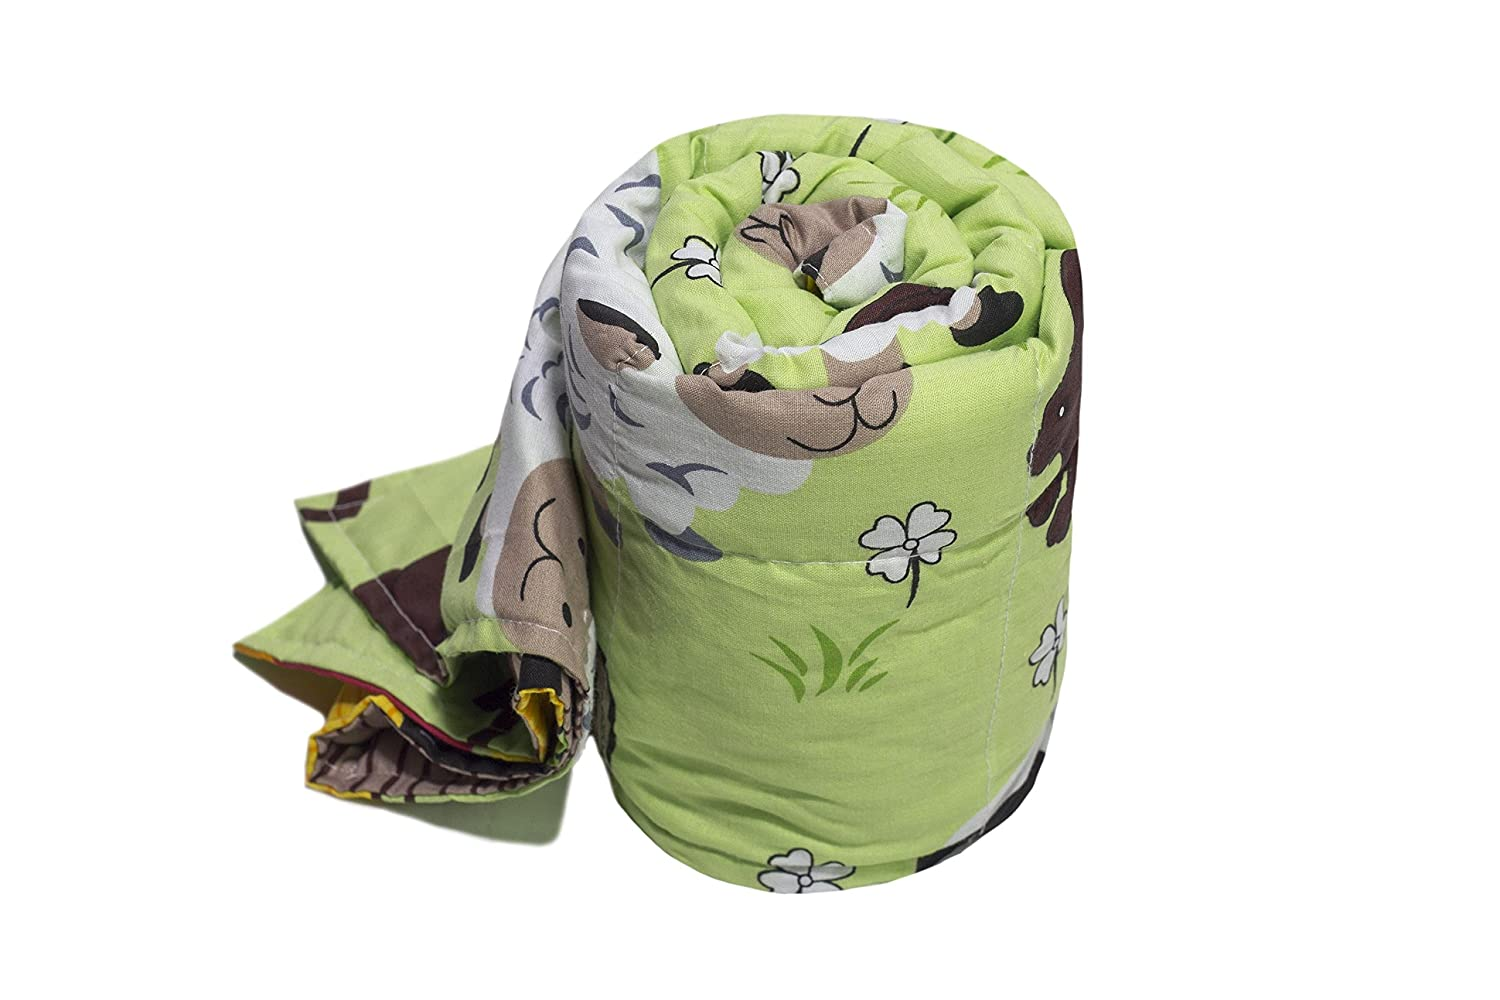 Weight: 1kg Used in Down Syndrome and ADHD Treatment Gravity Blanket for Children with Hedgehog Theme 90-109cm Senso-Rex Ideal for People between 3.0 and 3.7 Size: 90x120 cm of Height.